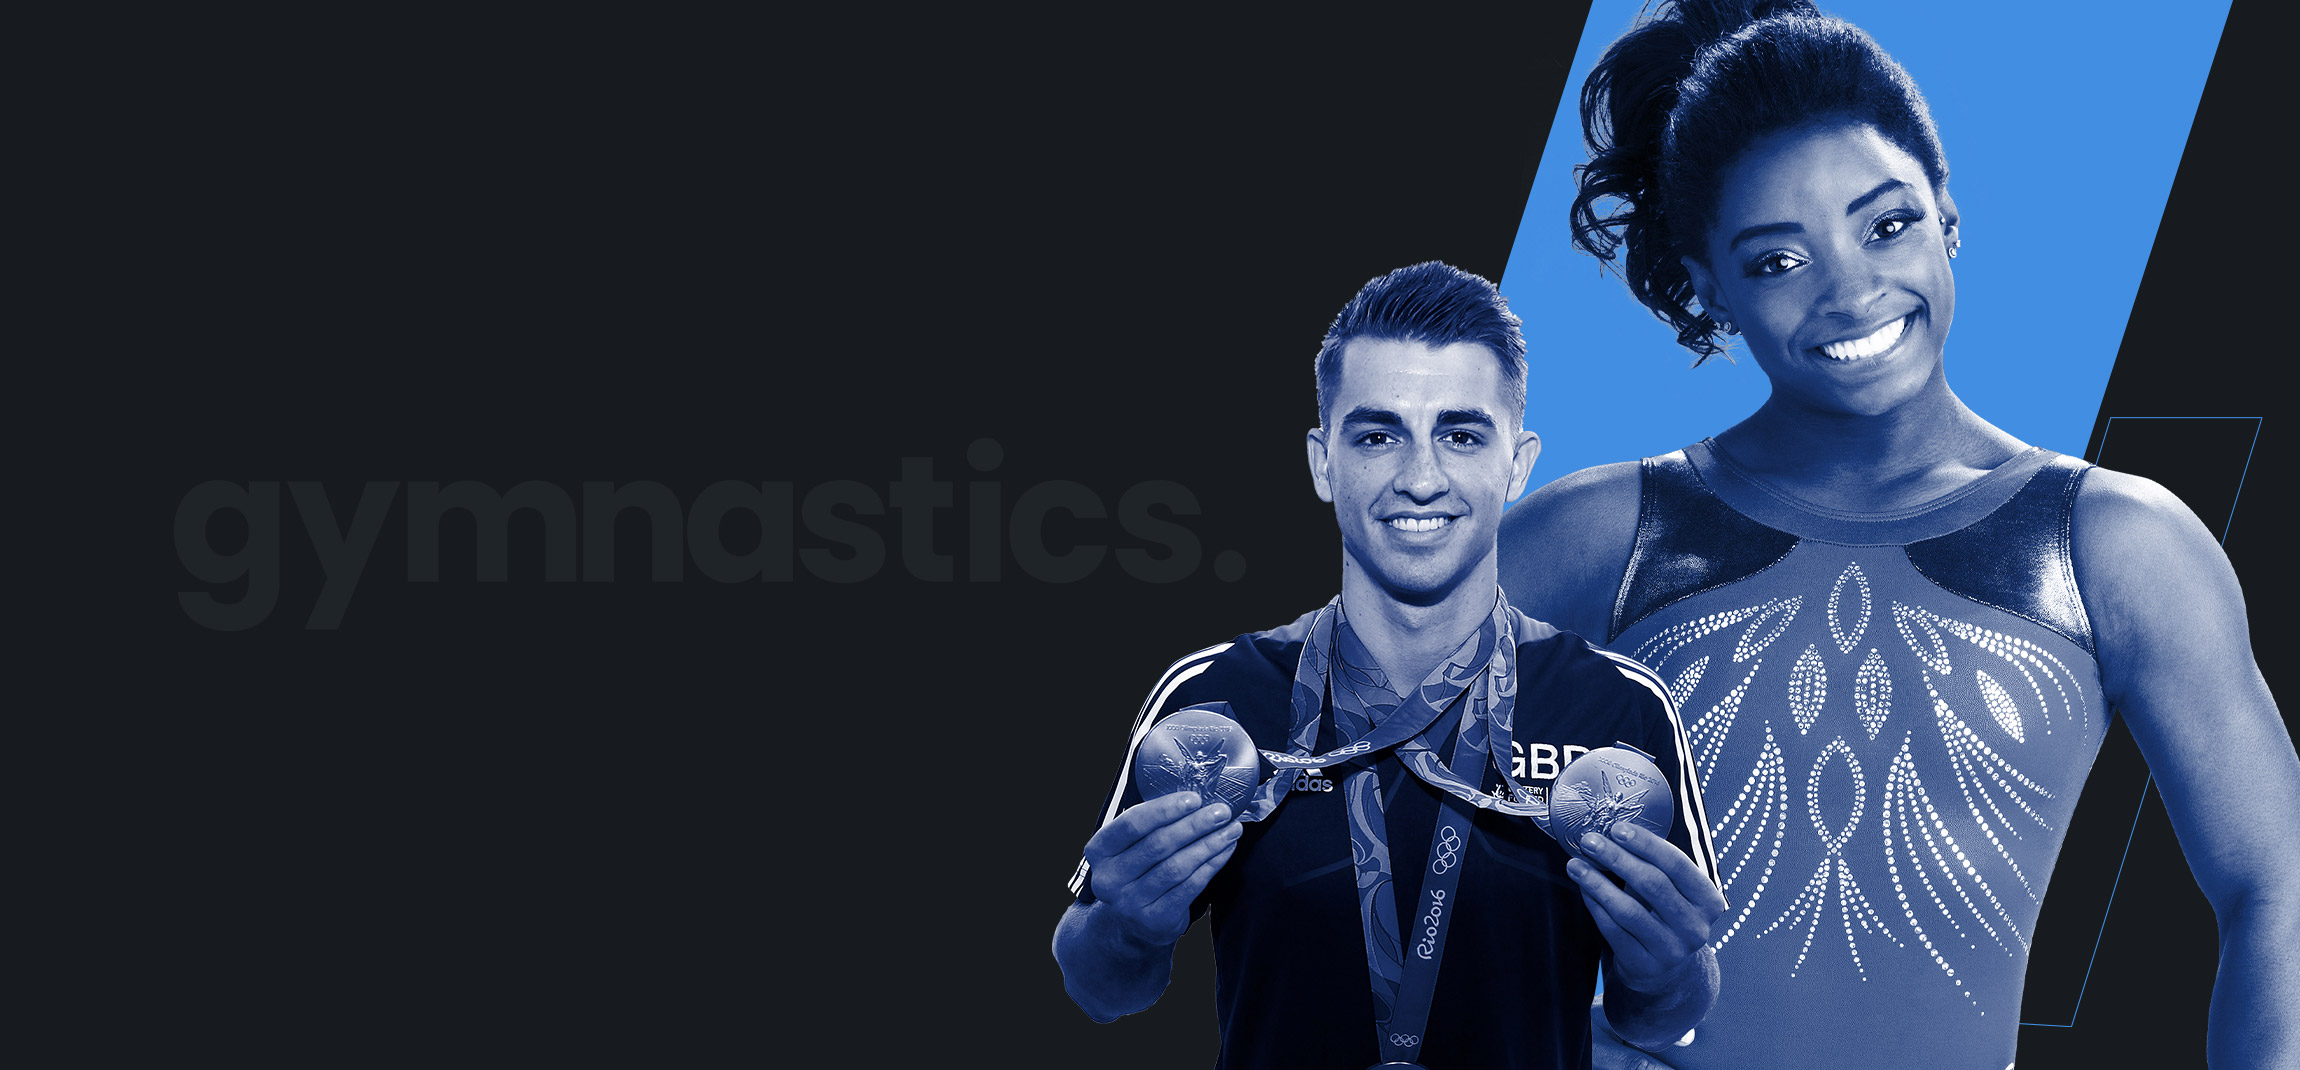 We are Matchroom Sport - We are Gymnastics